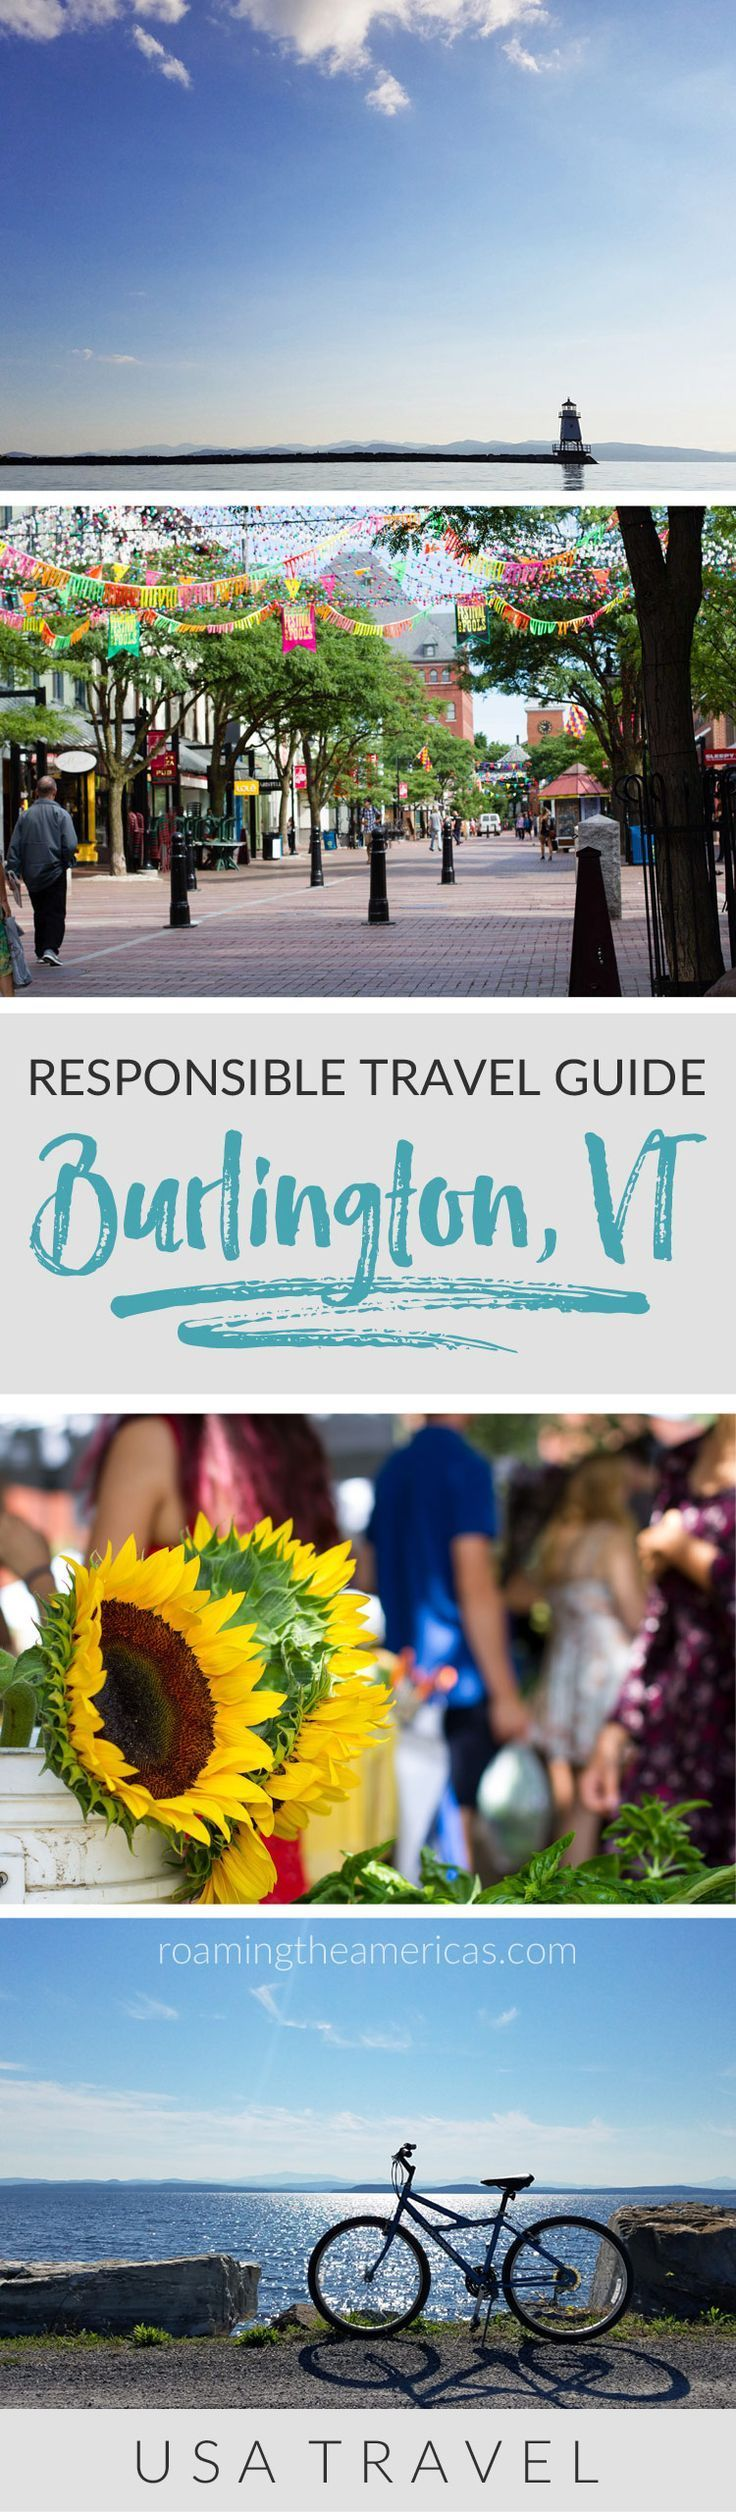 Vermont vacation   Vermont travel   Where to stay, eat, and things to do in Burlington, Vermont [USA]! Celebrate the Year of Sustainable Tourism with this responsible travel guide from @roamtheamericas #vermont #newengland #bucketlist #ecotourism via @roamtheamericas